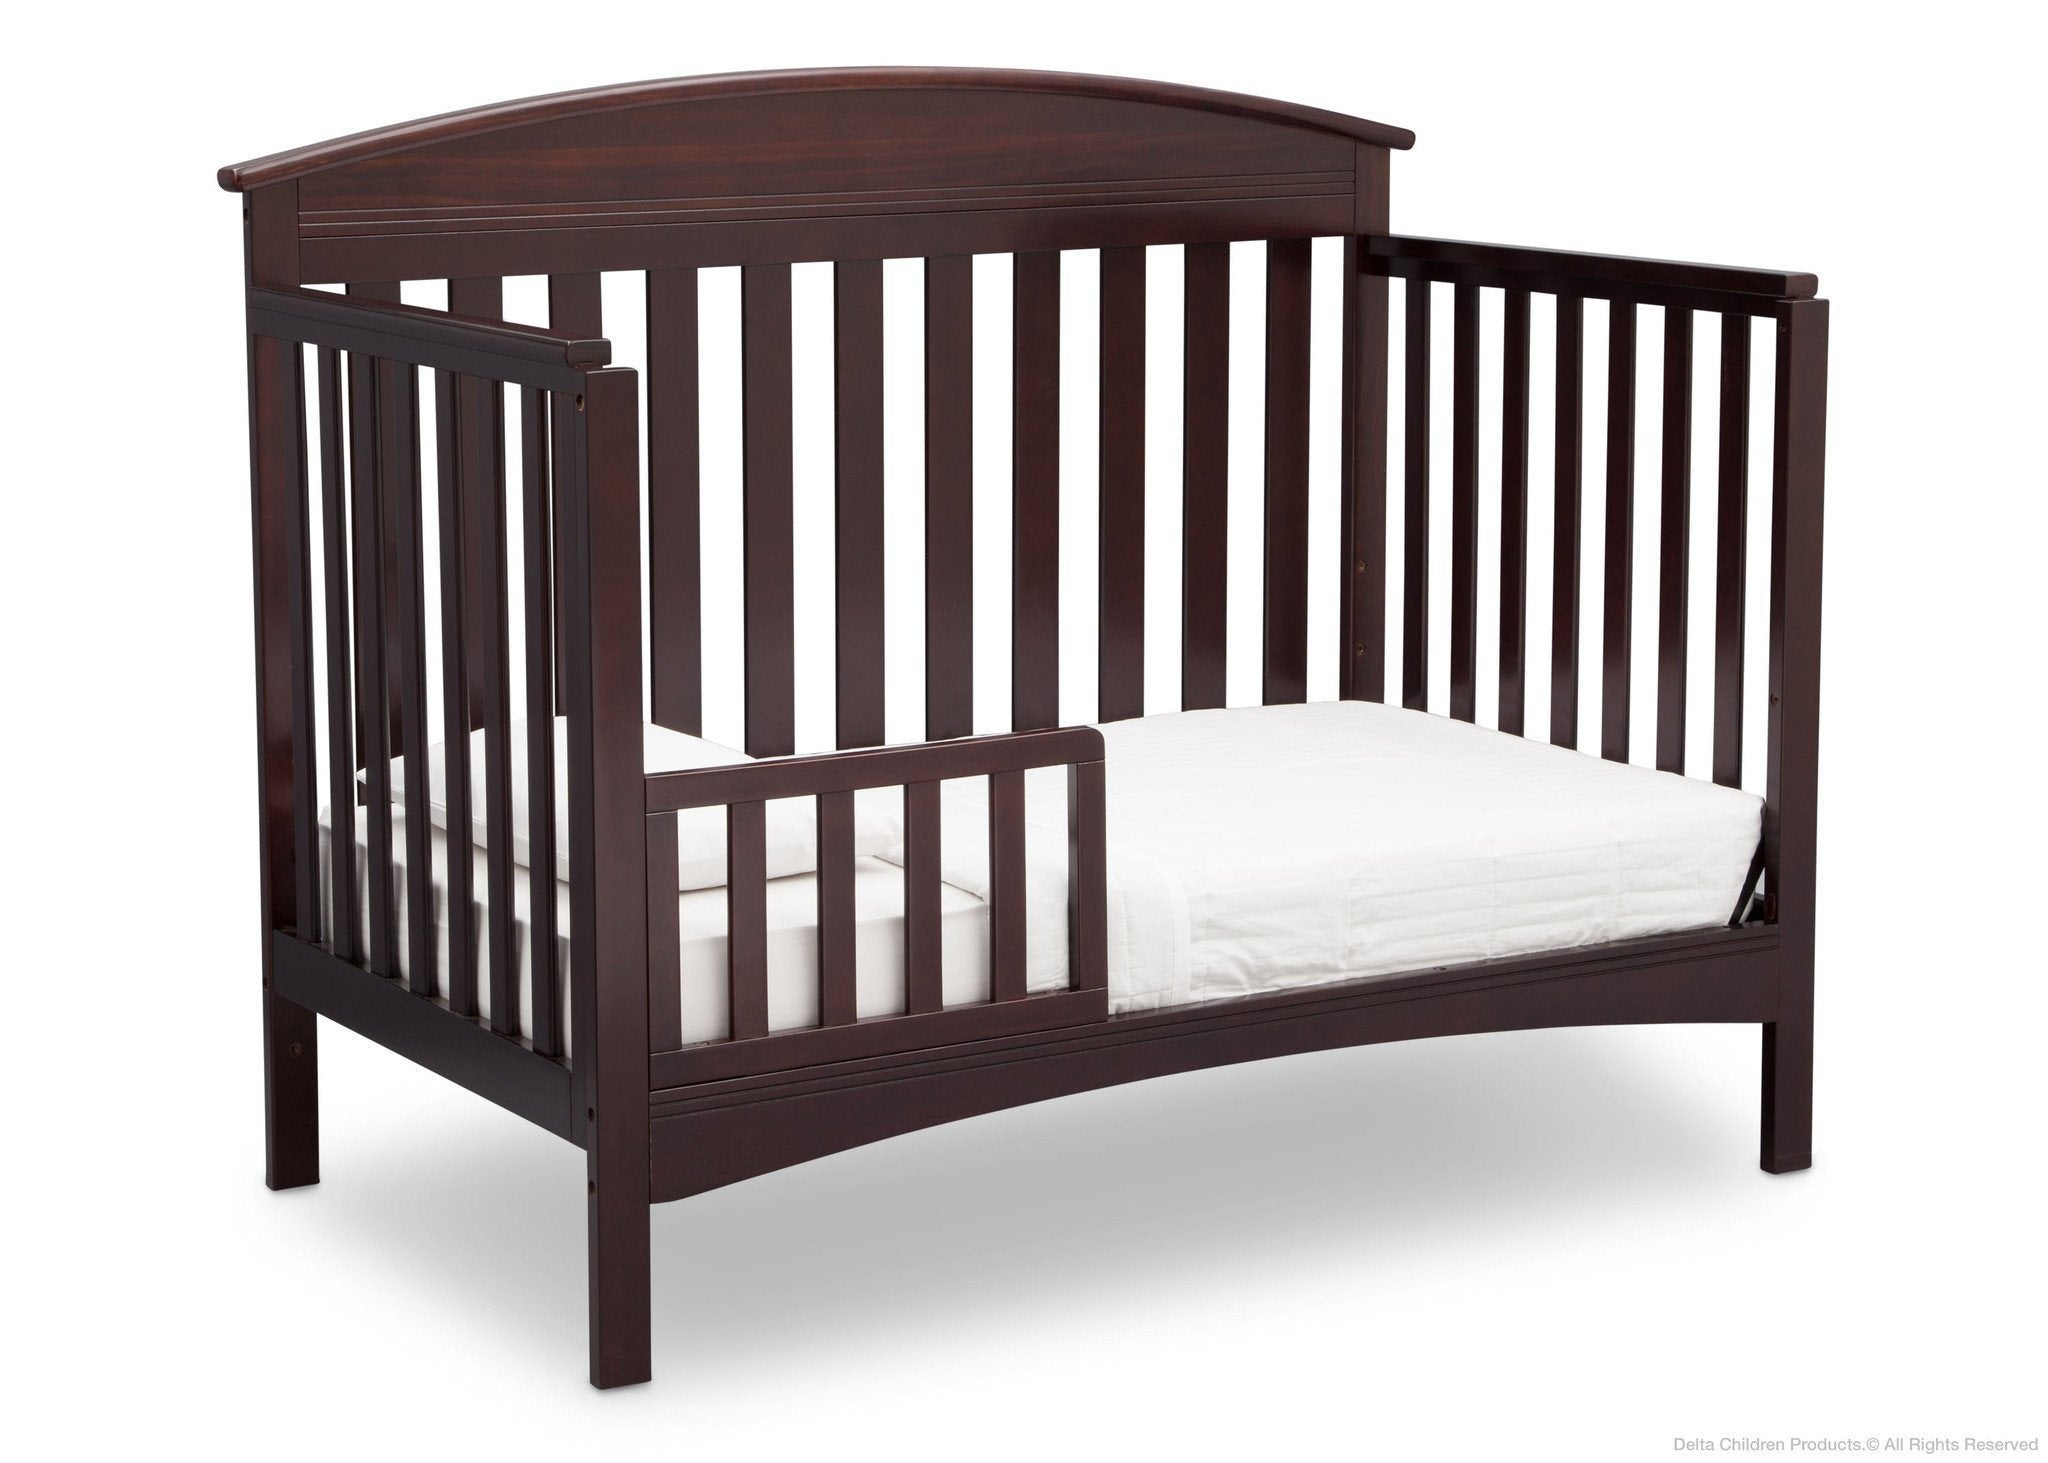 Delta Children Dark Chocolate (207) Abby 4-in-1 Crib Toddler Bed Conversion Side View c4c